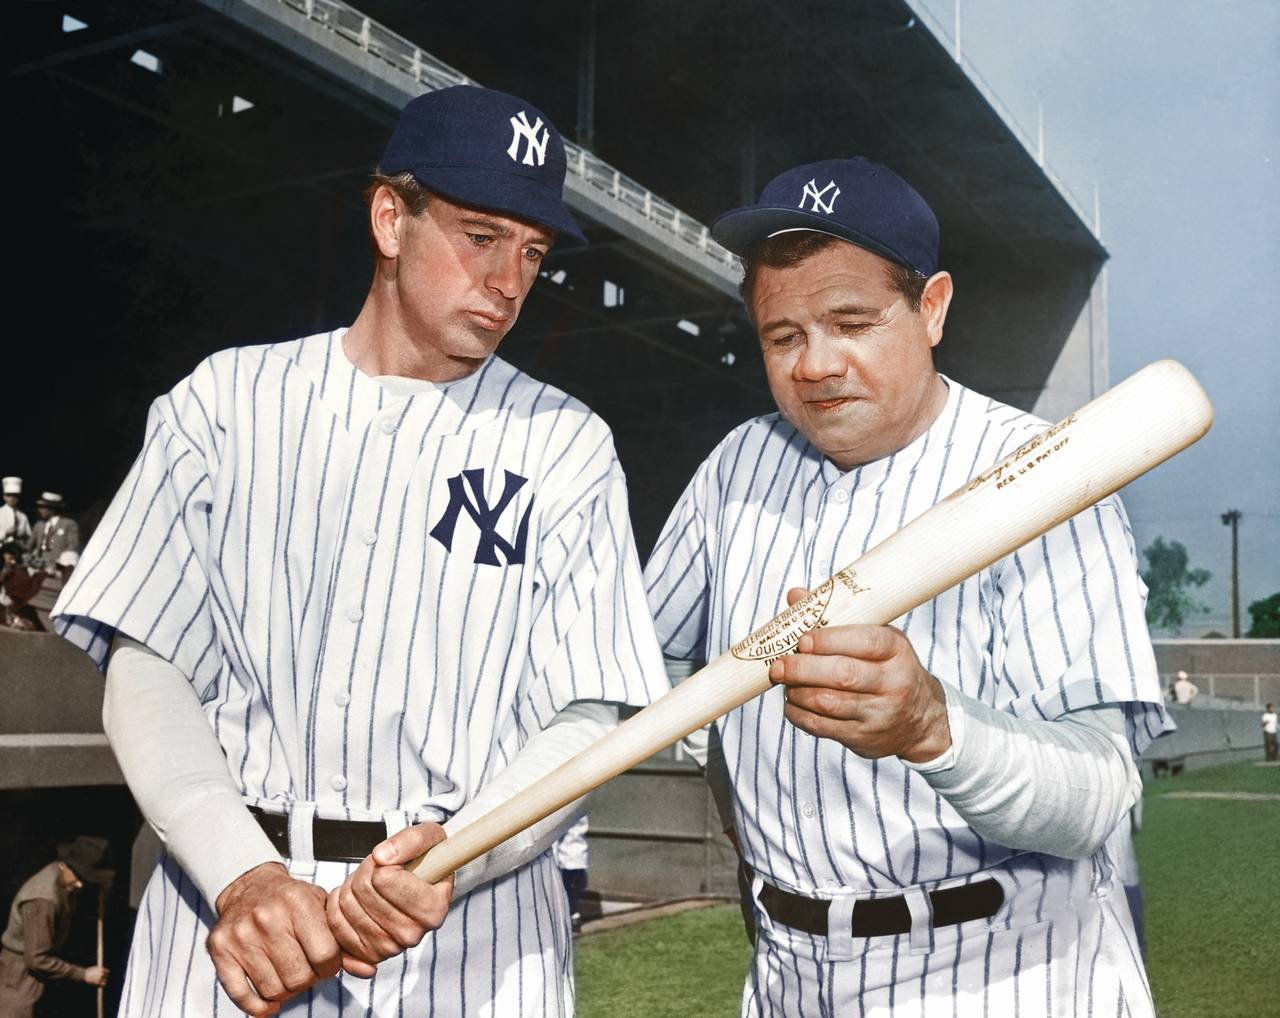 Babe ruth in color-7643